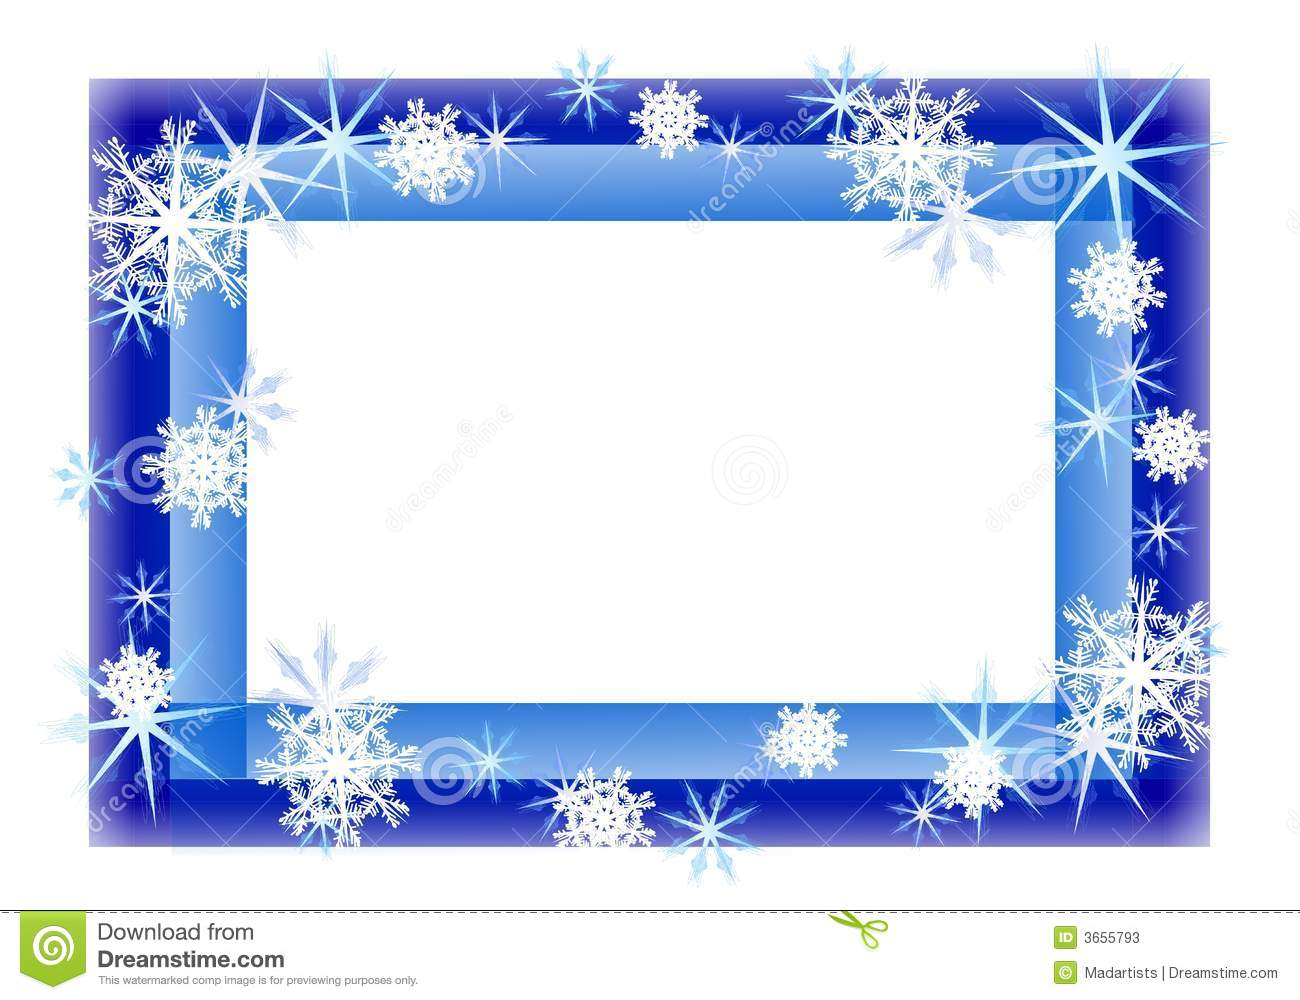 An illustration featuring a blue border decoratied with light blue ...